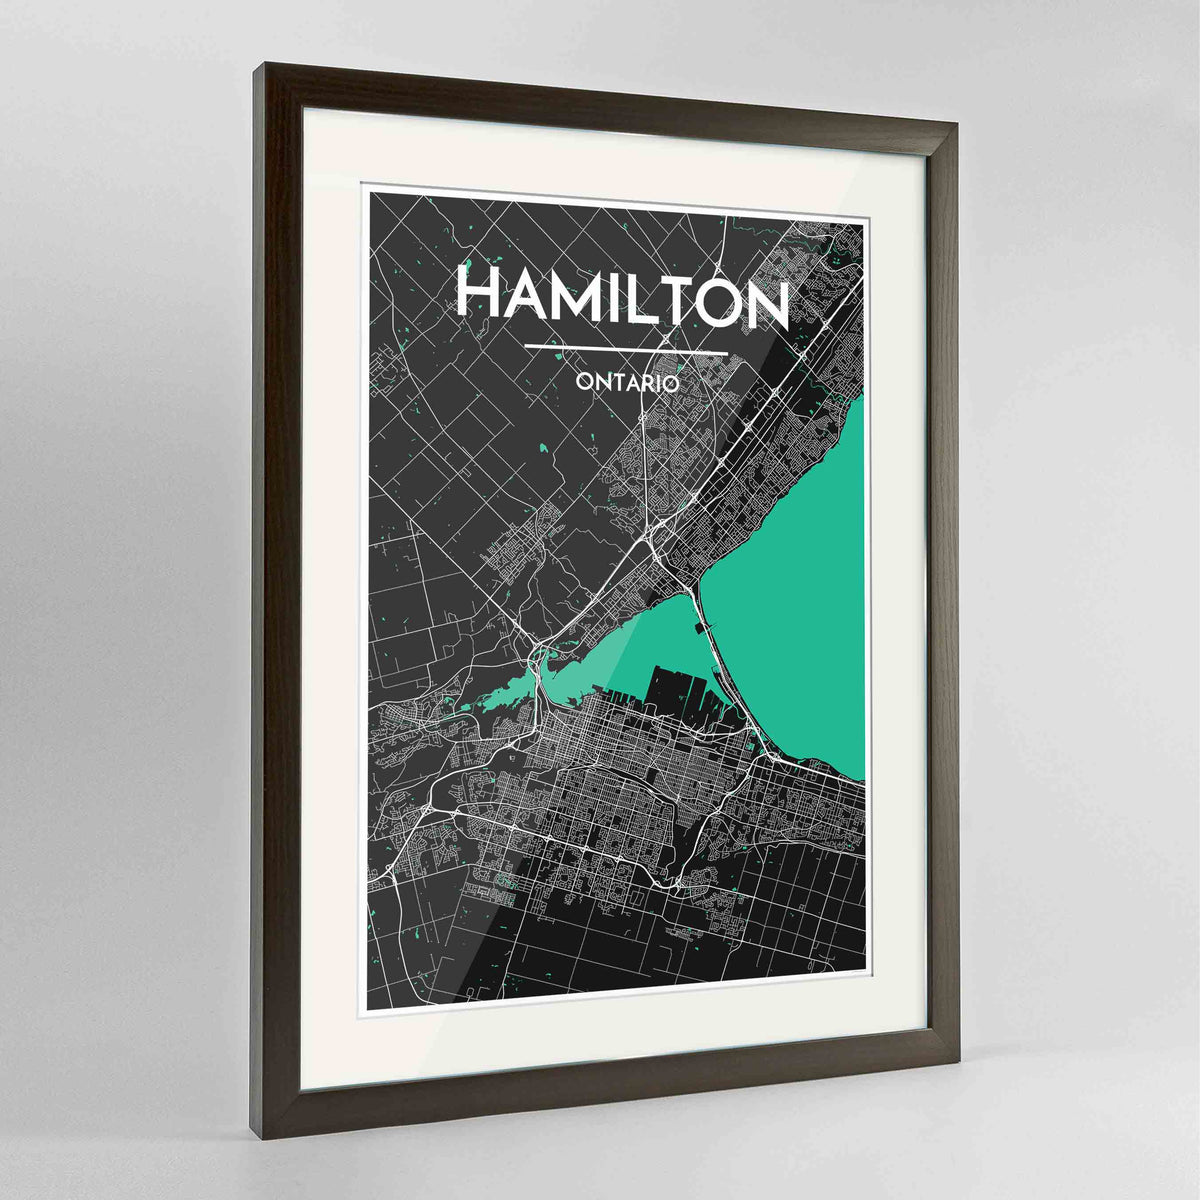 "Framed Hamilton City Map 24x36"" Contemporary Walnut frame Point Two Design Group"